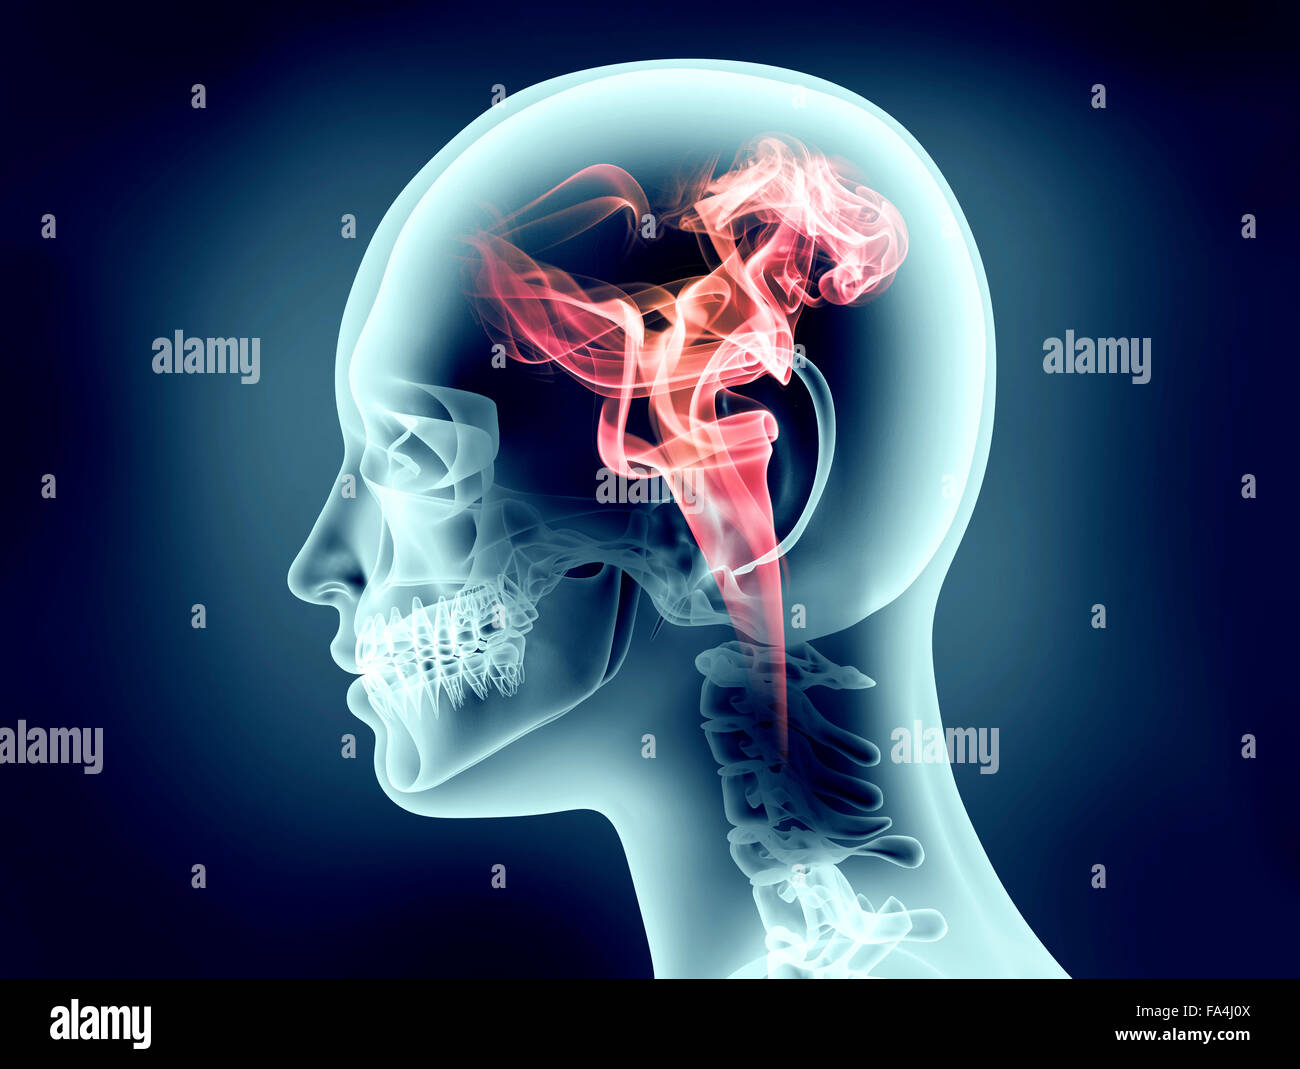 x-ray image of human head with flames - Stock Image